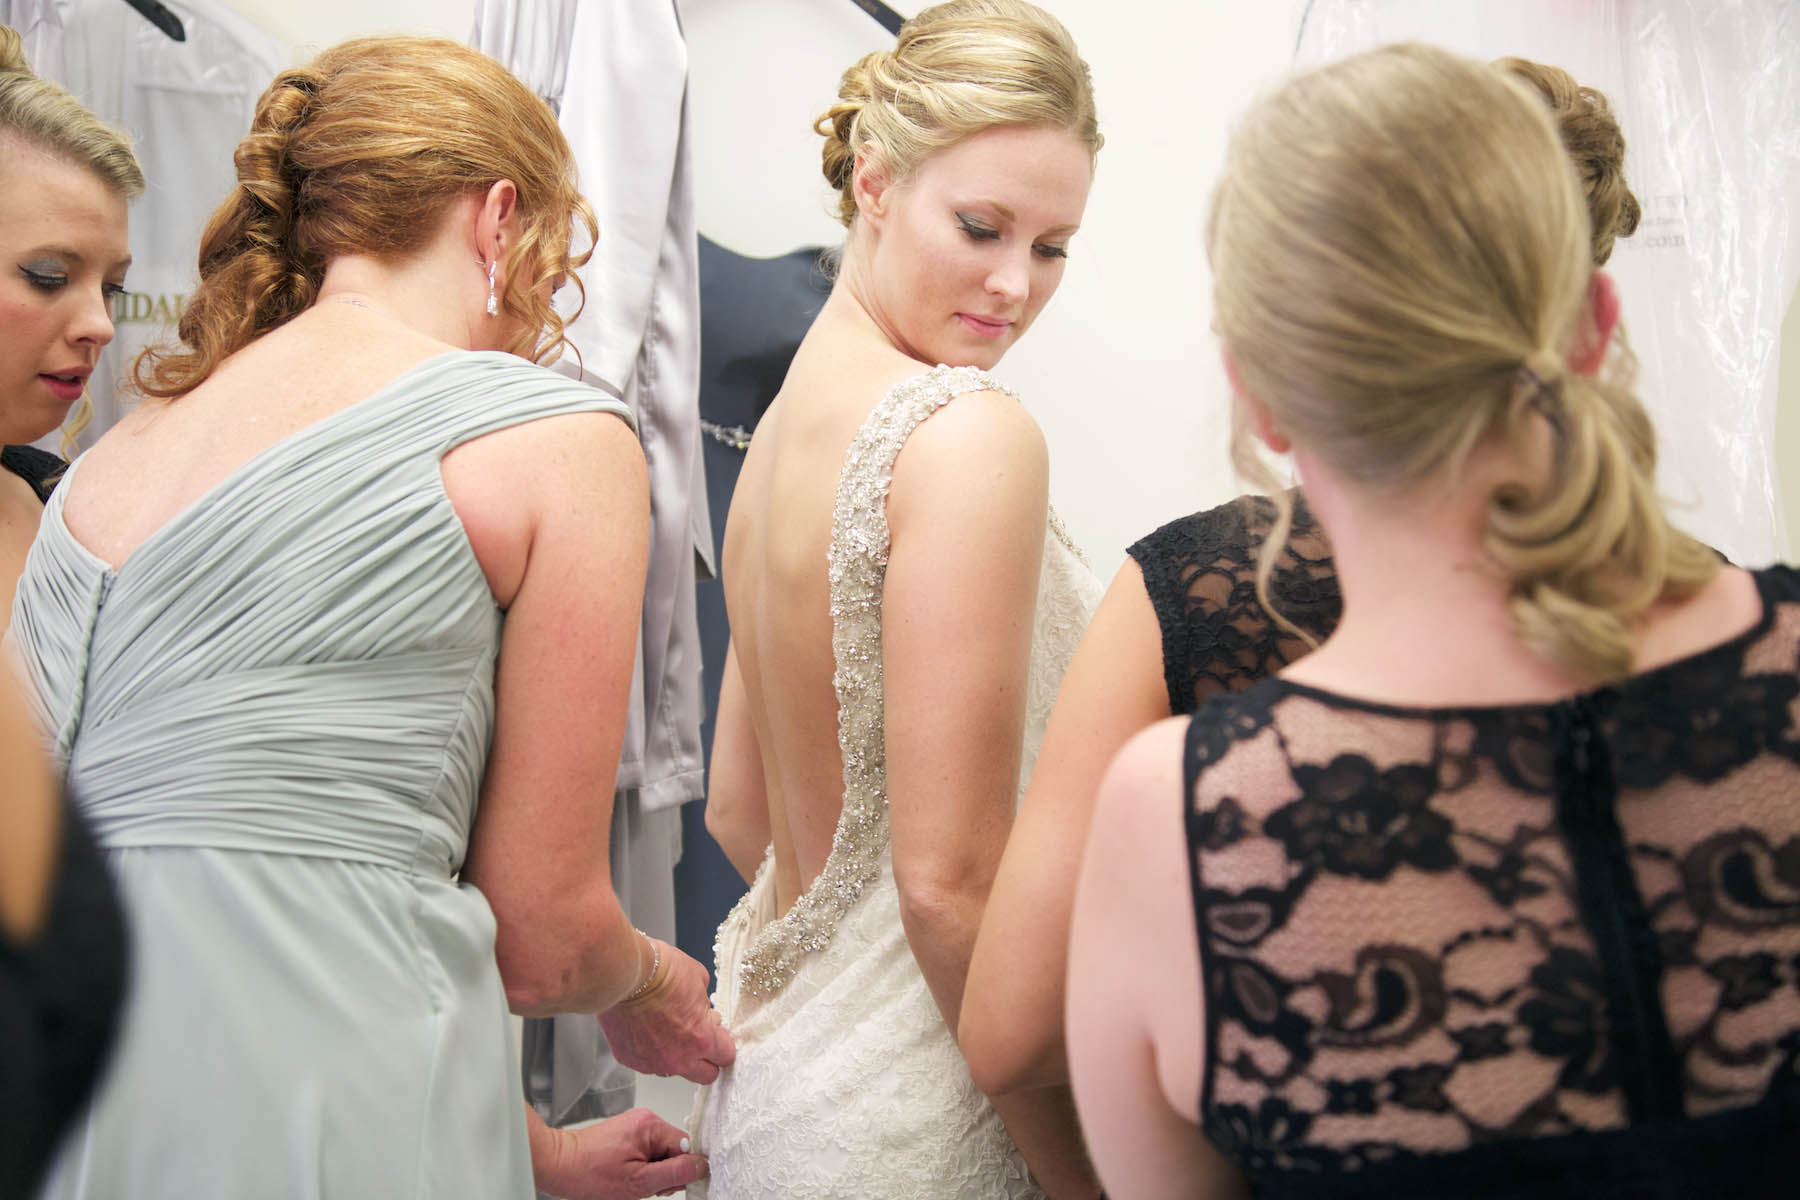 Jaclyn's mom helps her with her dress before the ceremony at Allerton Park, Monticello. Wedding photography by Tiffany & Steve of Warmowski Photography.